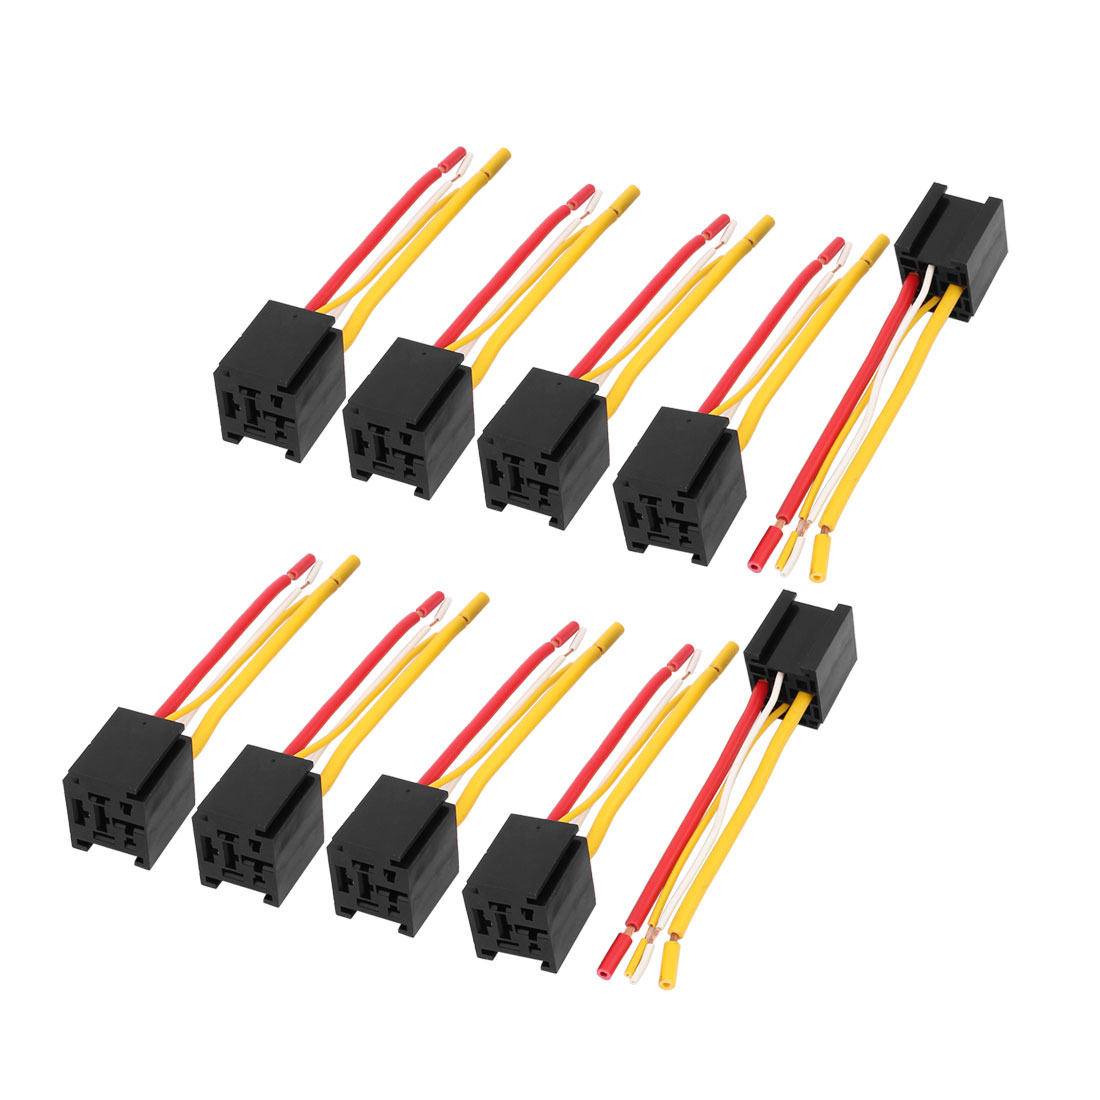 DC 12V/24V 80A 4-Pin Wires Cable Relay Socket Harness Connector 10pcs for Car Truck